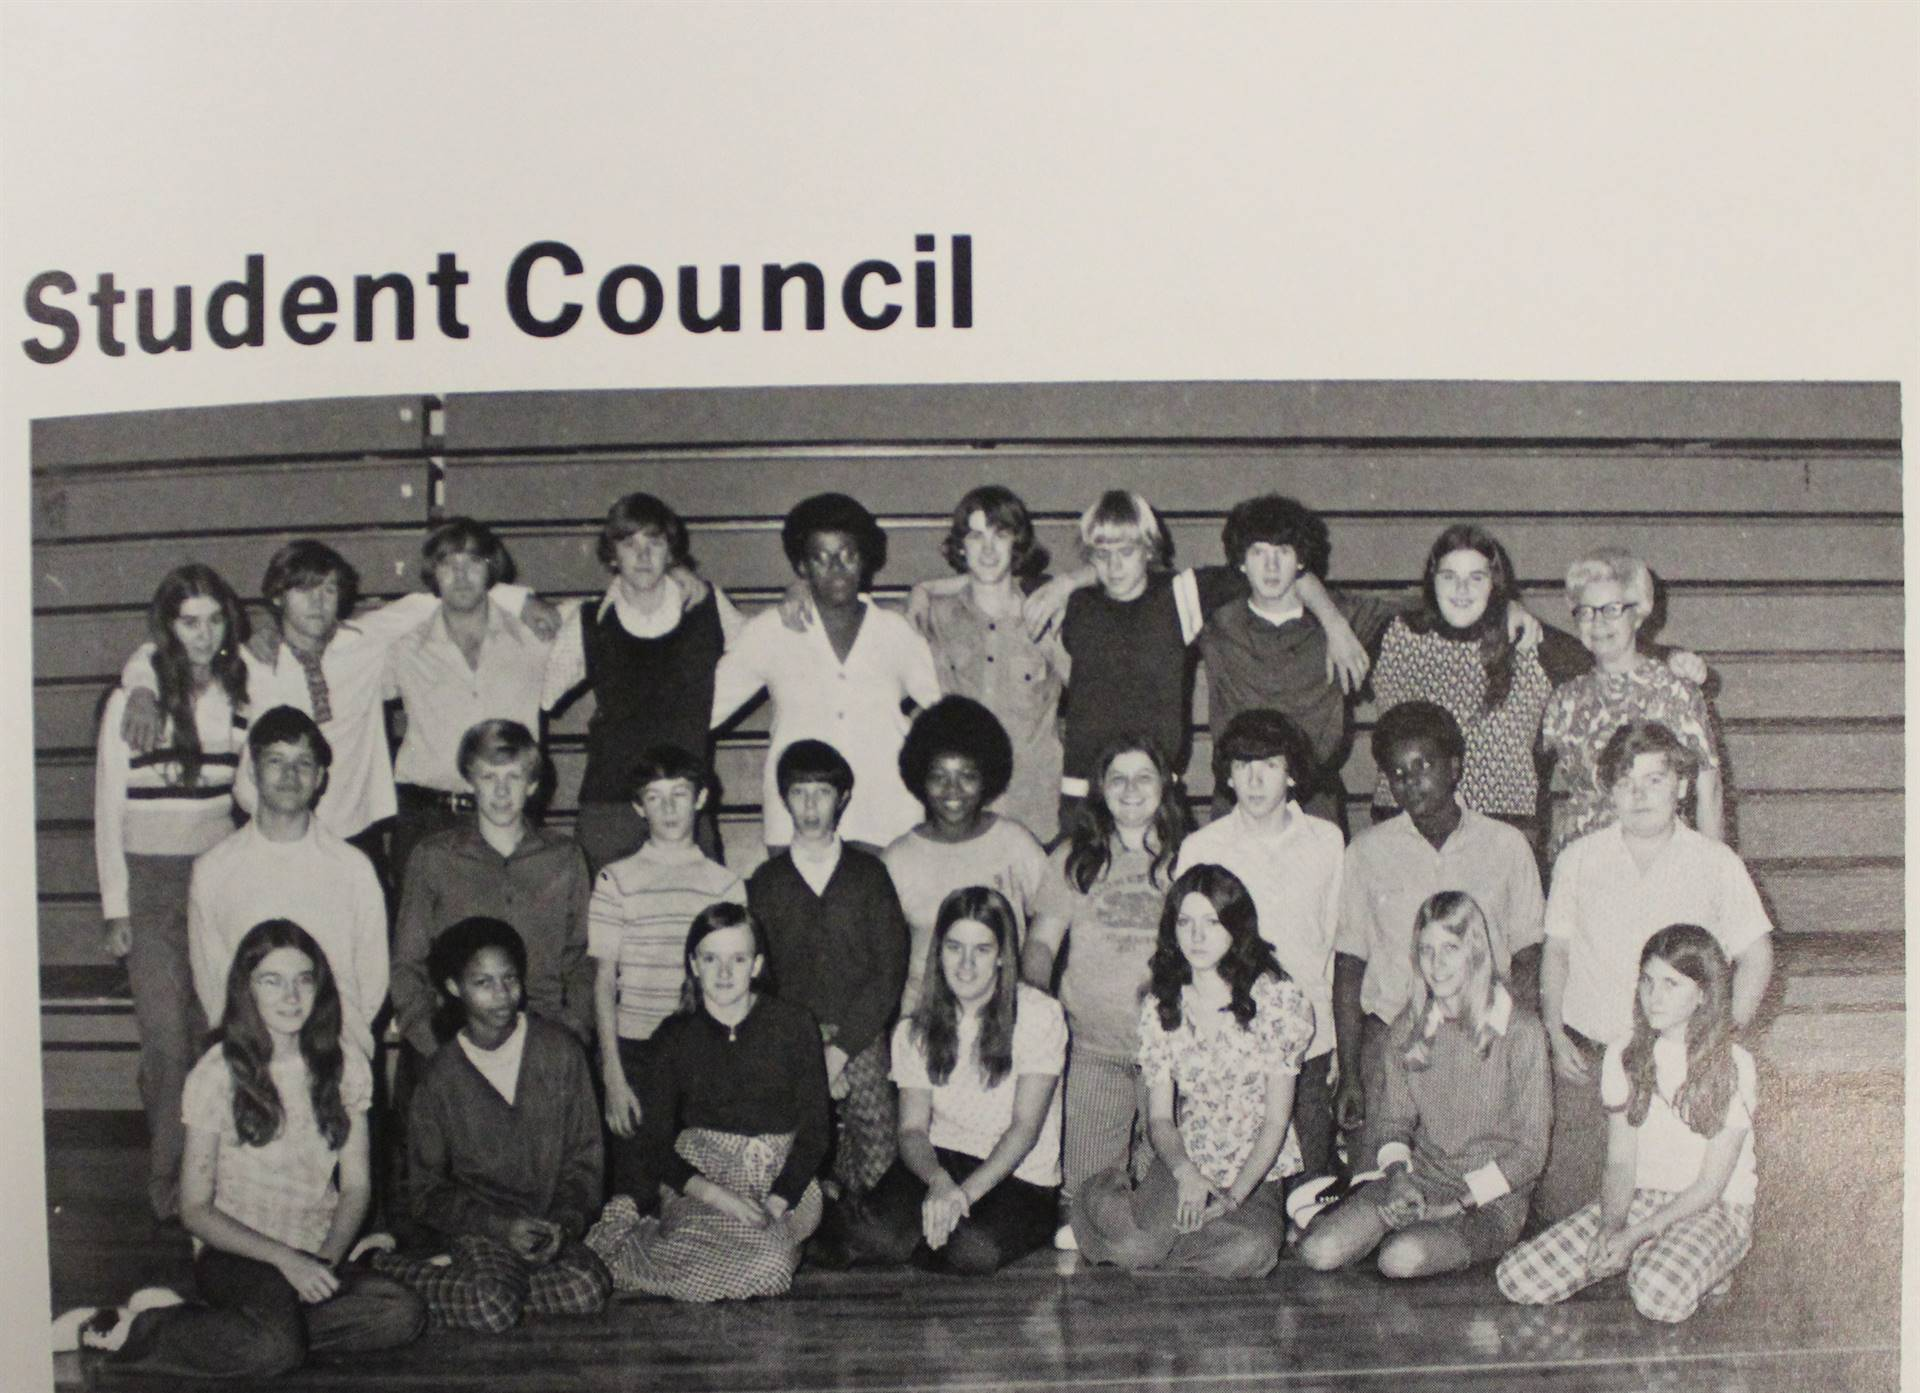 1974 Student Council